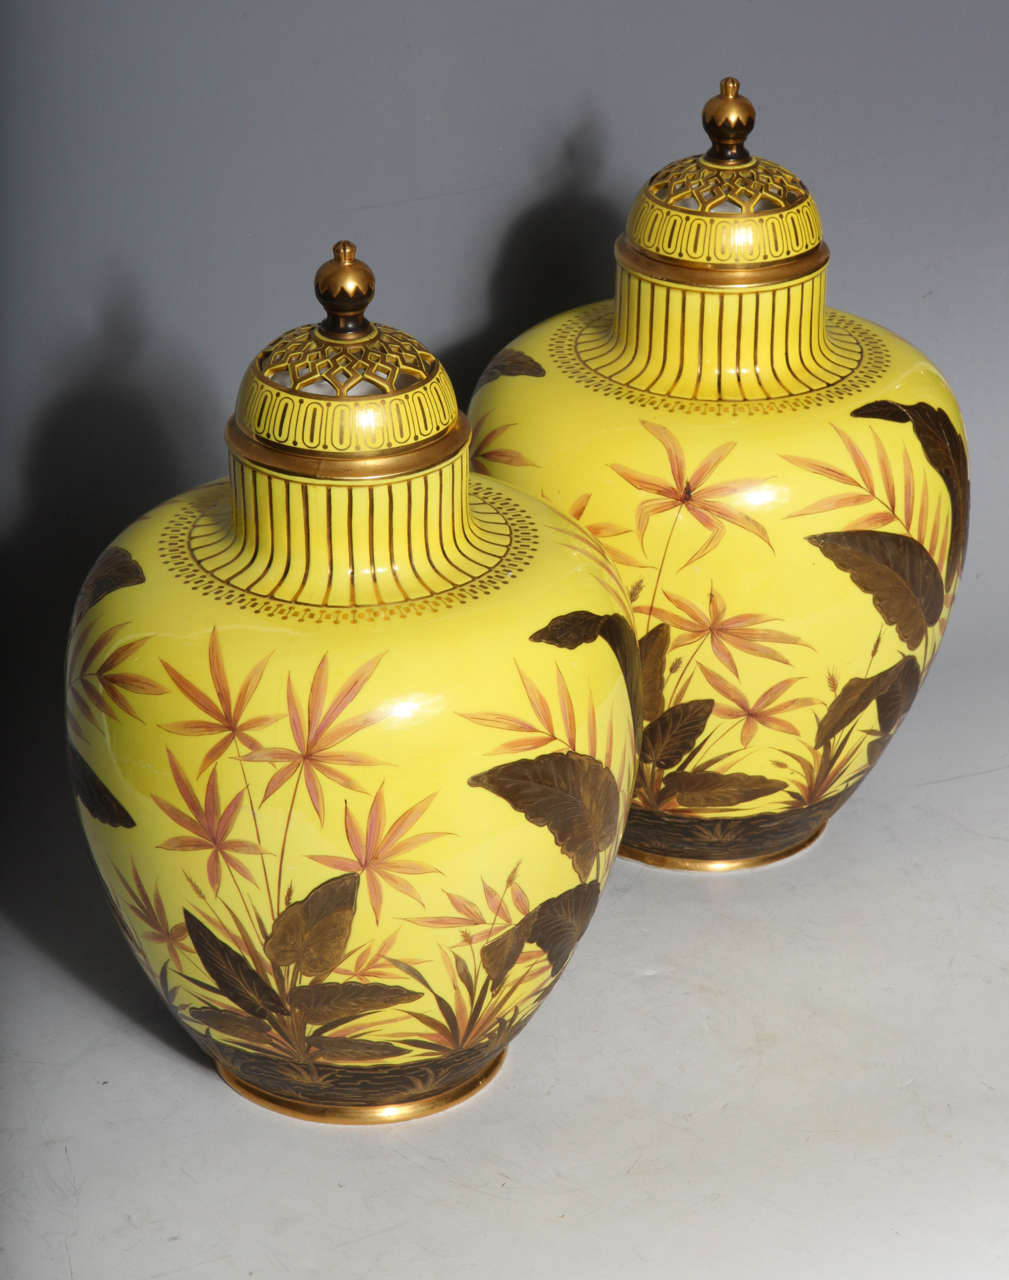 Unusual Pair of Yellow Ground Antique Royal Crown Derby Porcelain Vases For Sale 4